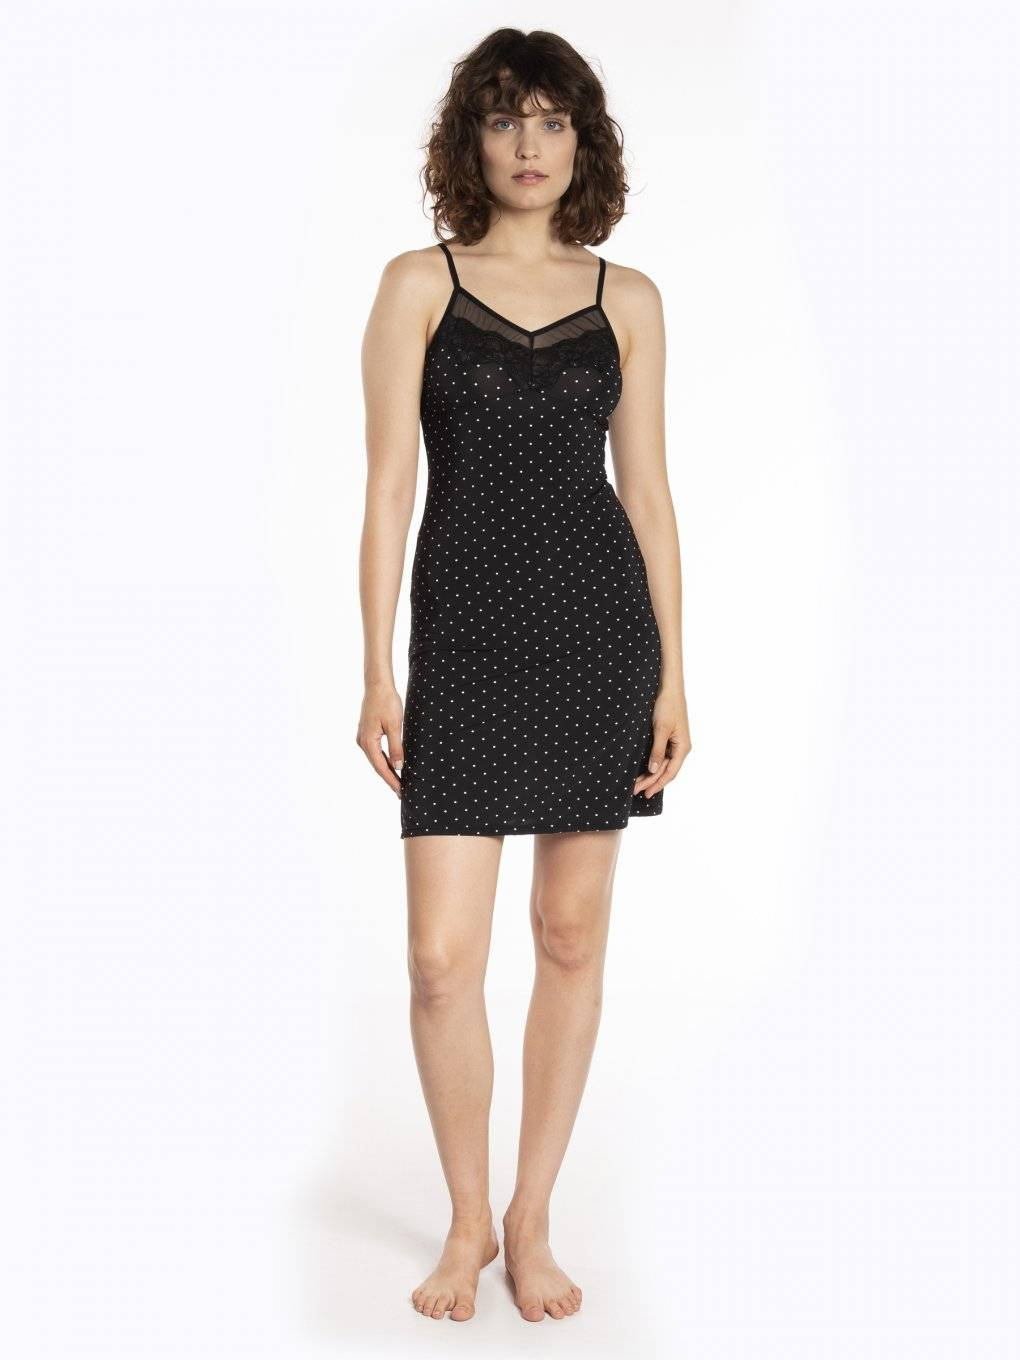 Polka dot print nightdress with lace